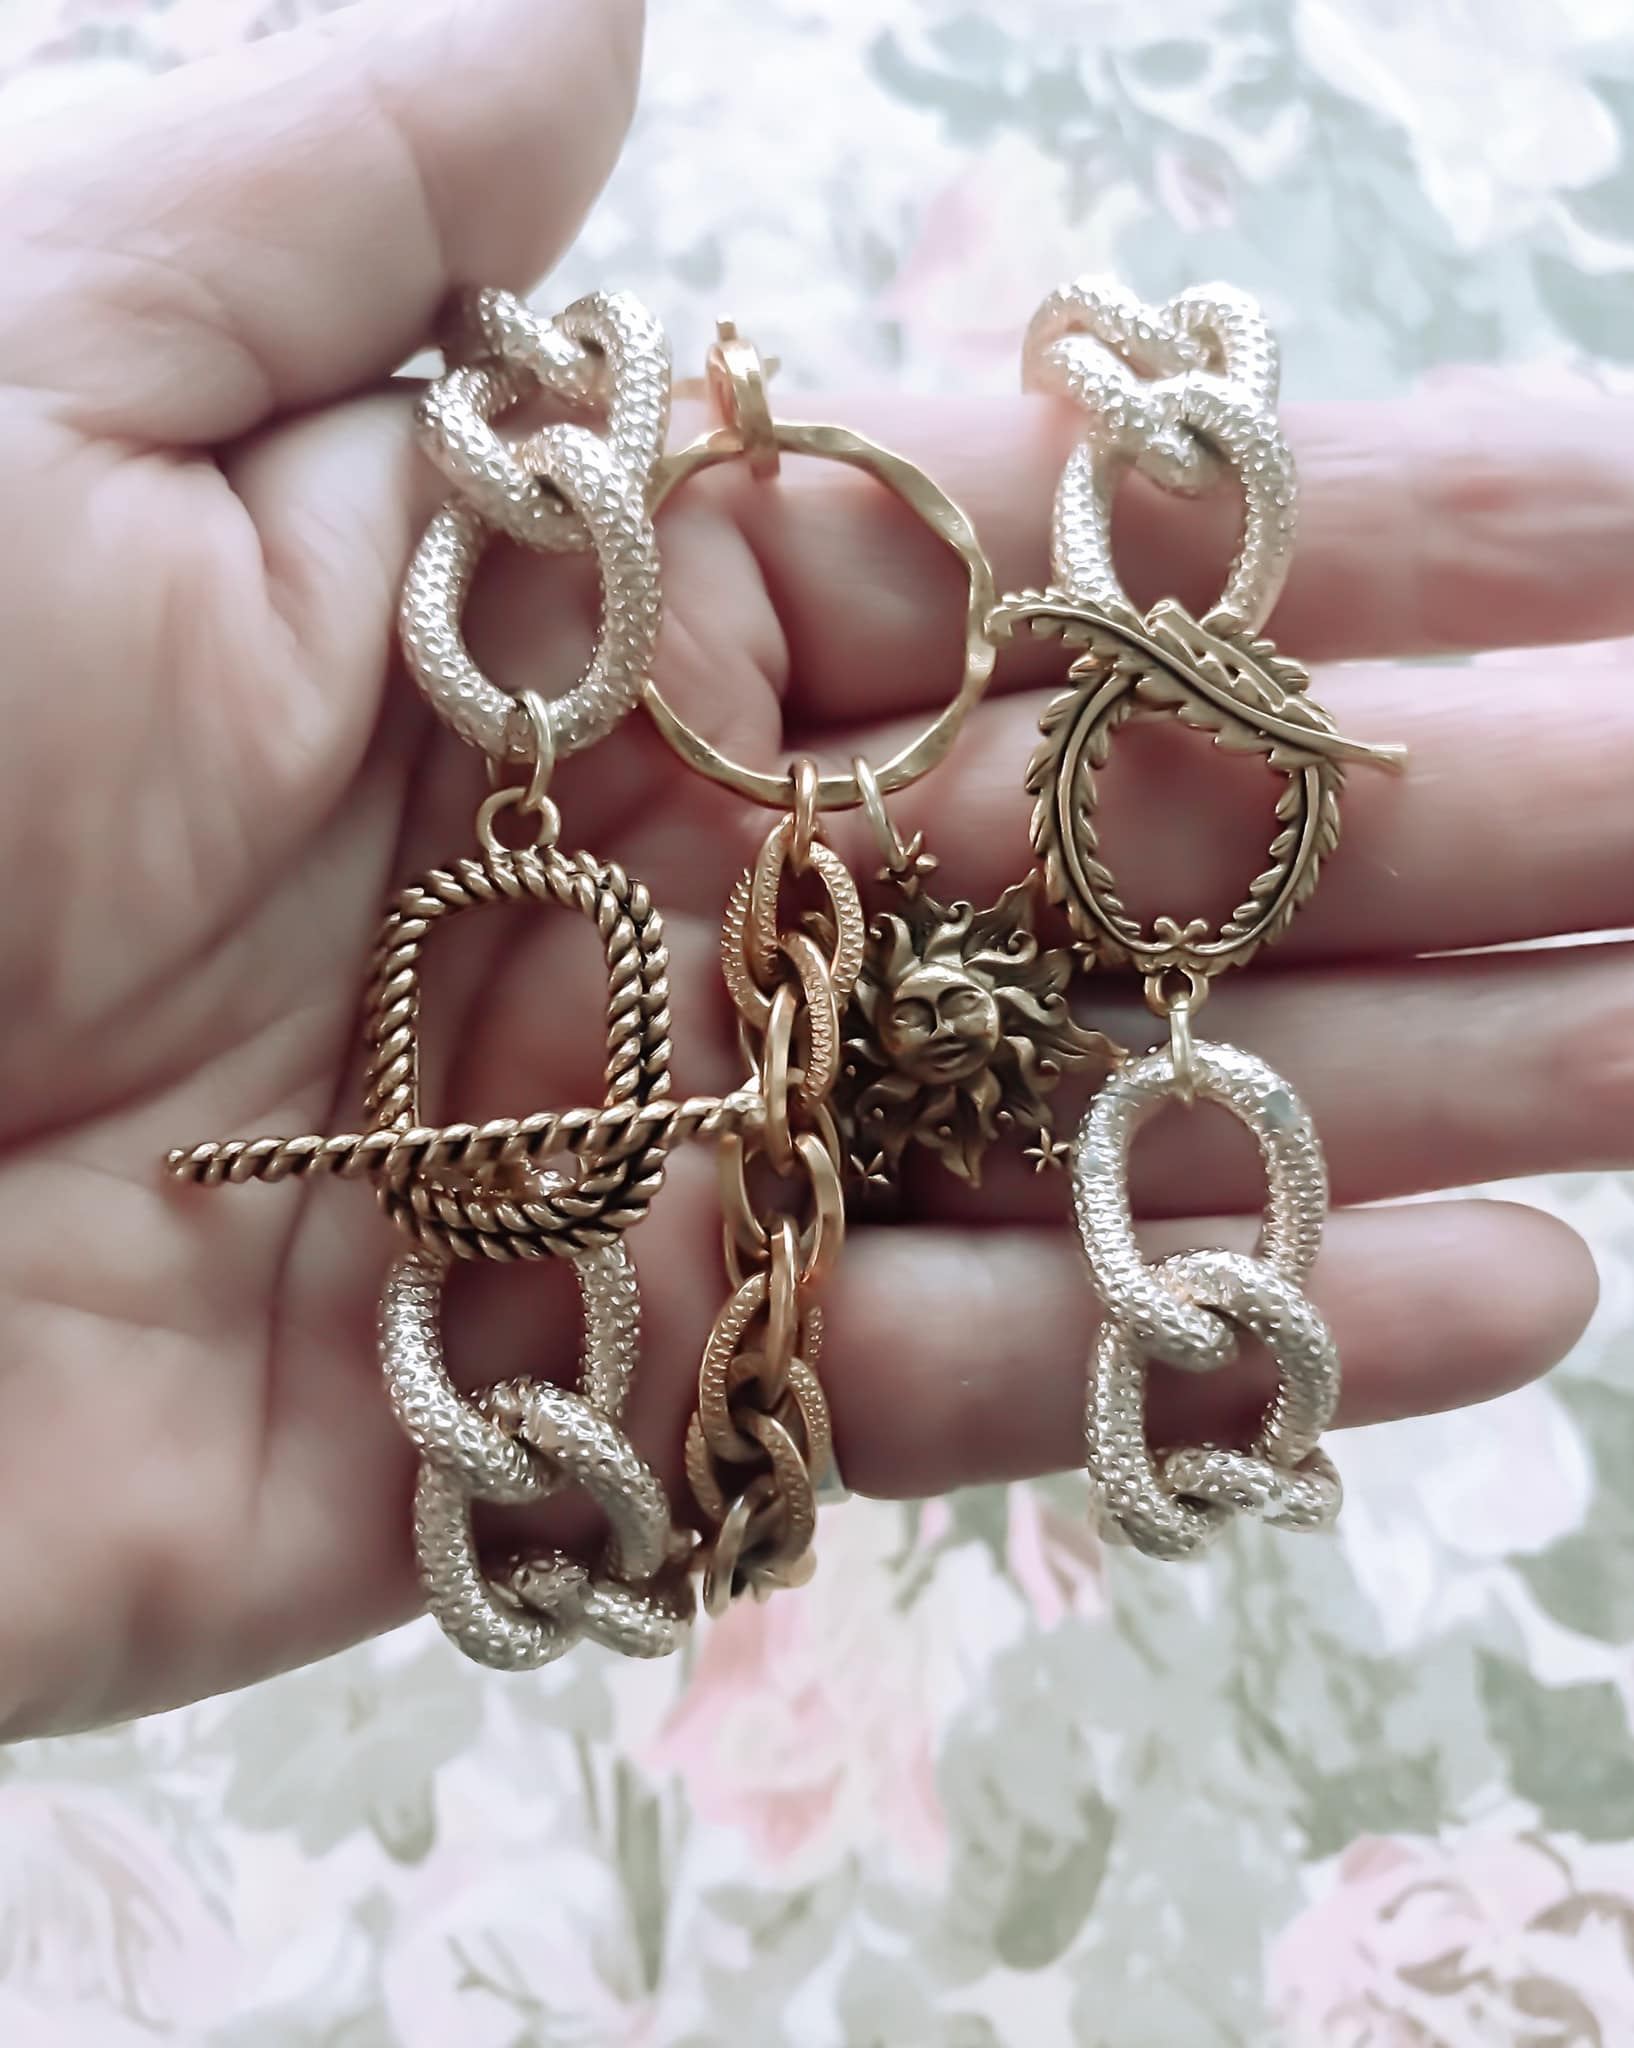 Vintage Revisited handmade jewelry gold chain bracelet